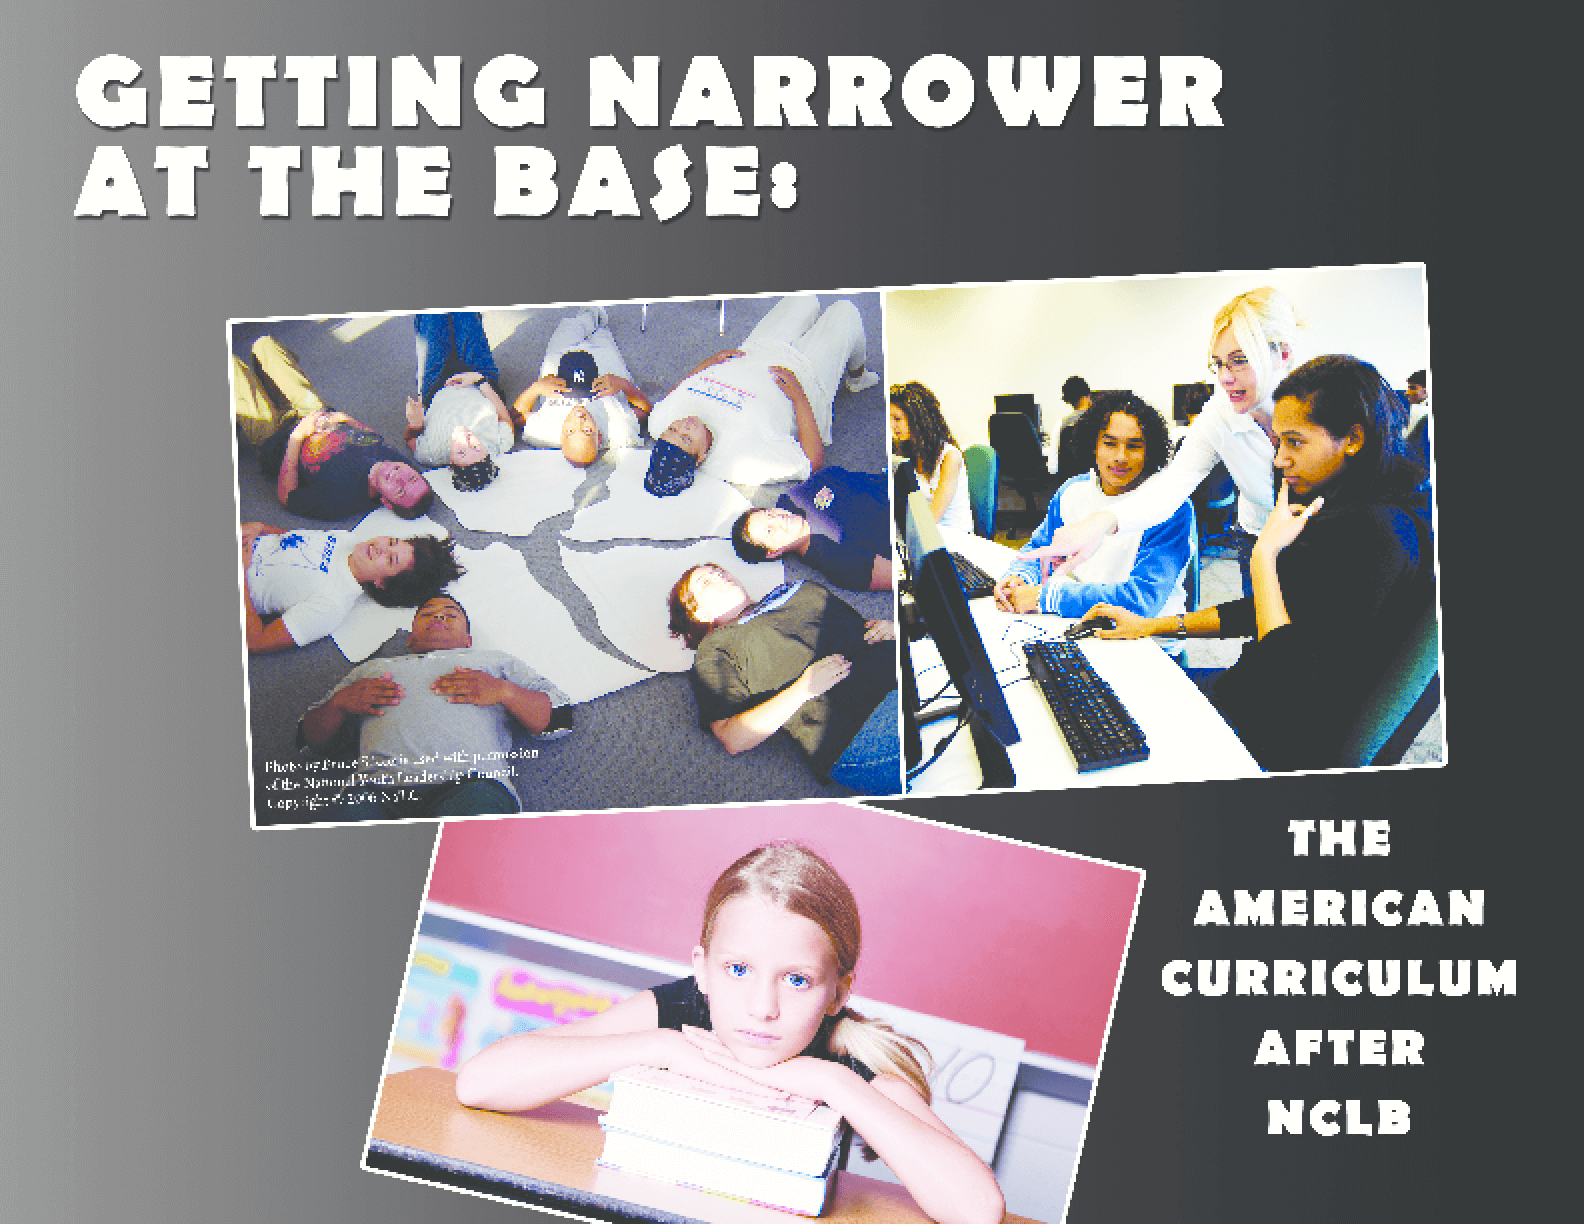 Getting Narrower at the Base: The American Curriculum After NCLB